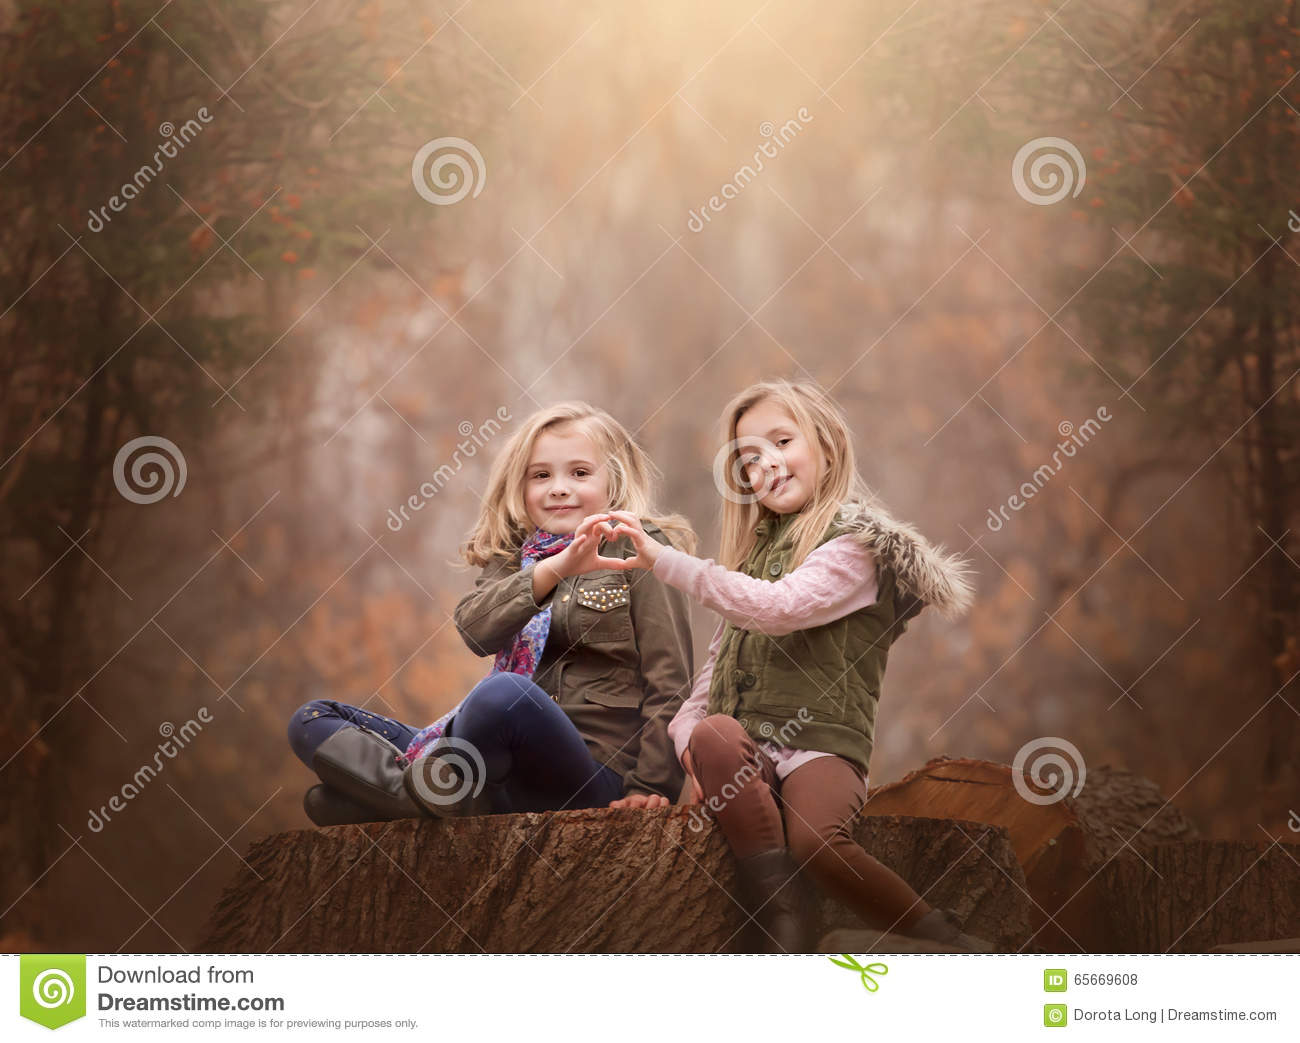 Artistic Outdoor Portrait Of Two Blond Girls Sitting On A Log Tree In Woods